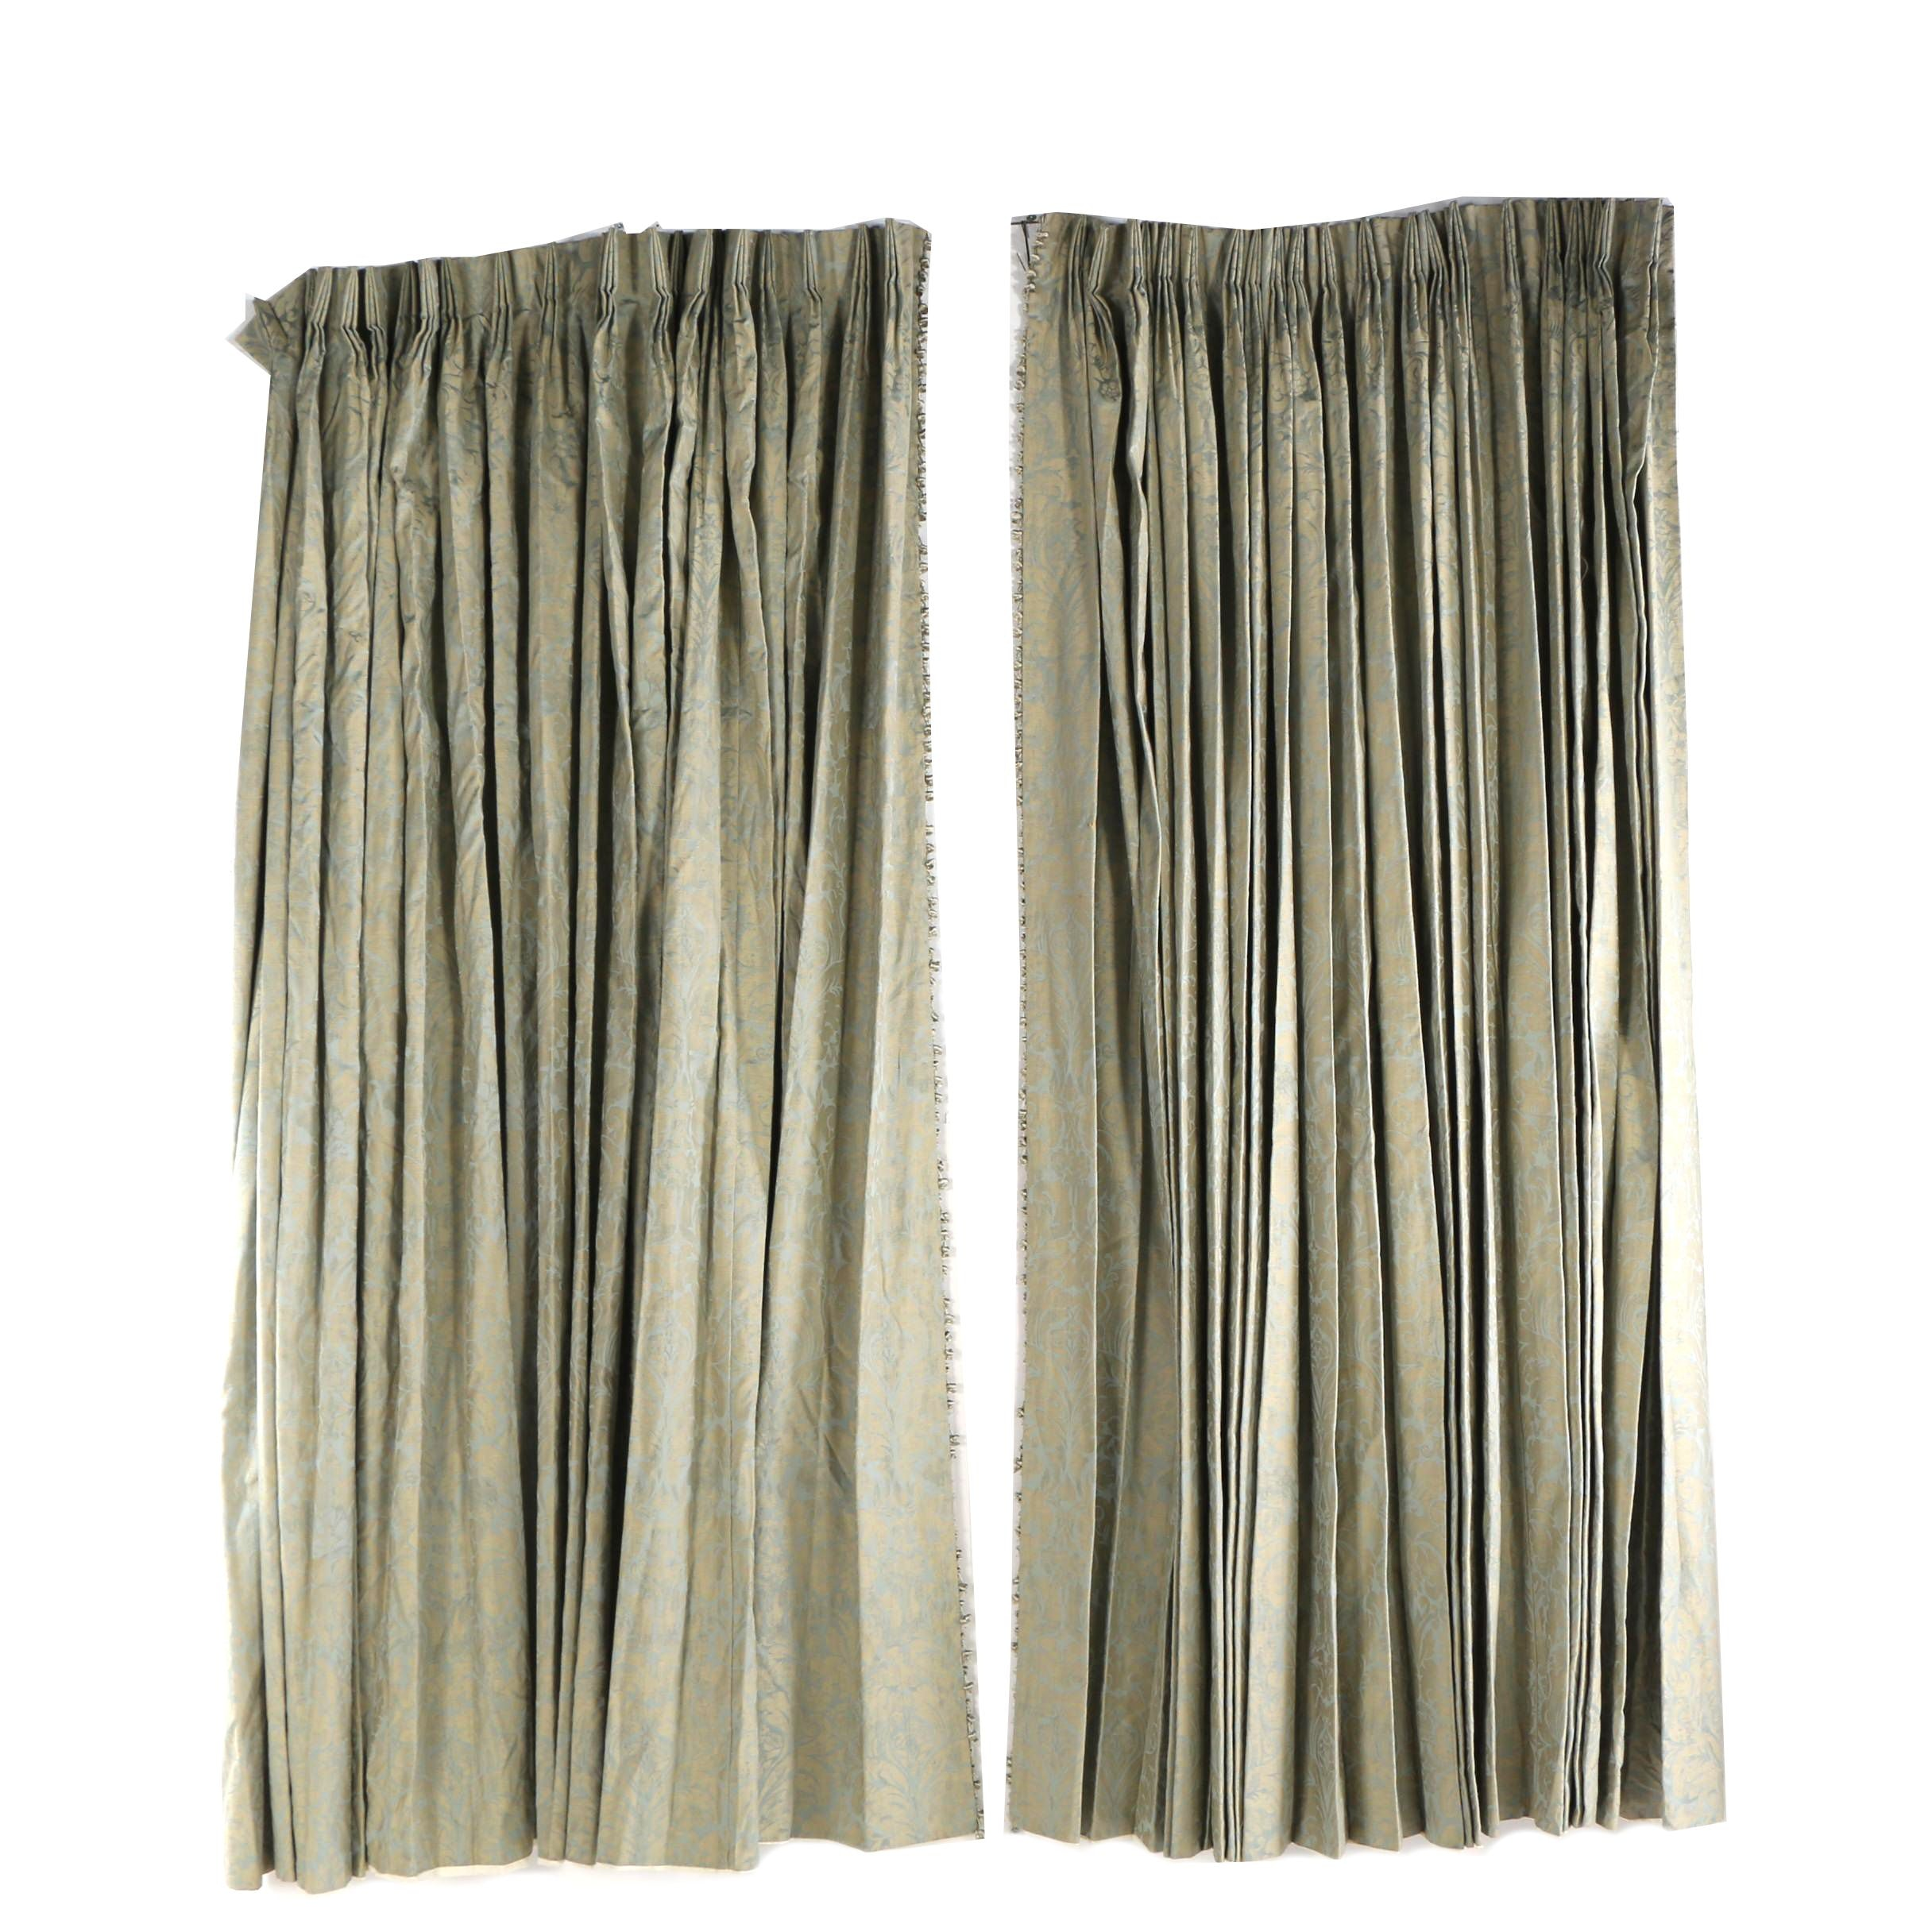 Custom Made Damask Brocade Pinch Pleat Drapes with Tassel Trim and Tie Backs